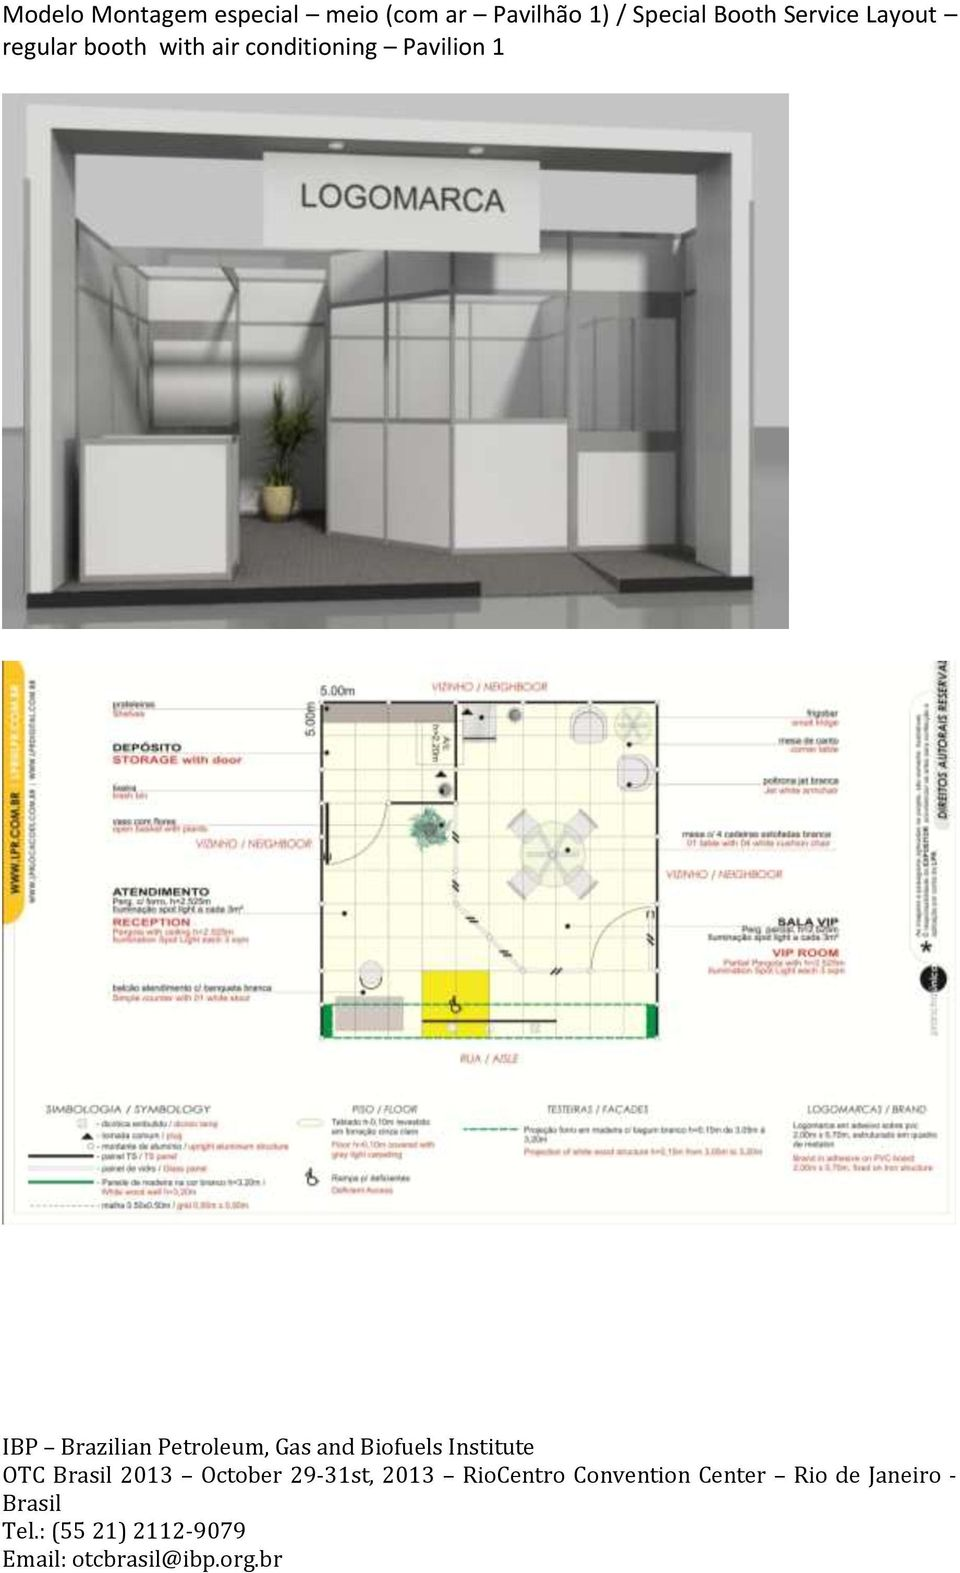 Booth Service Layout regular